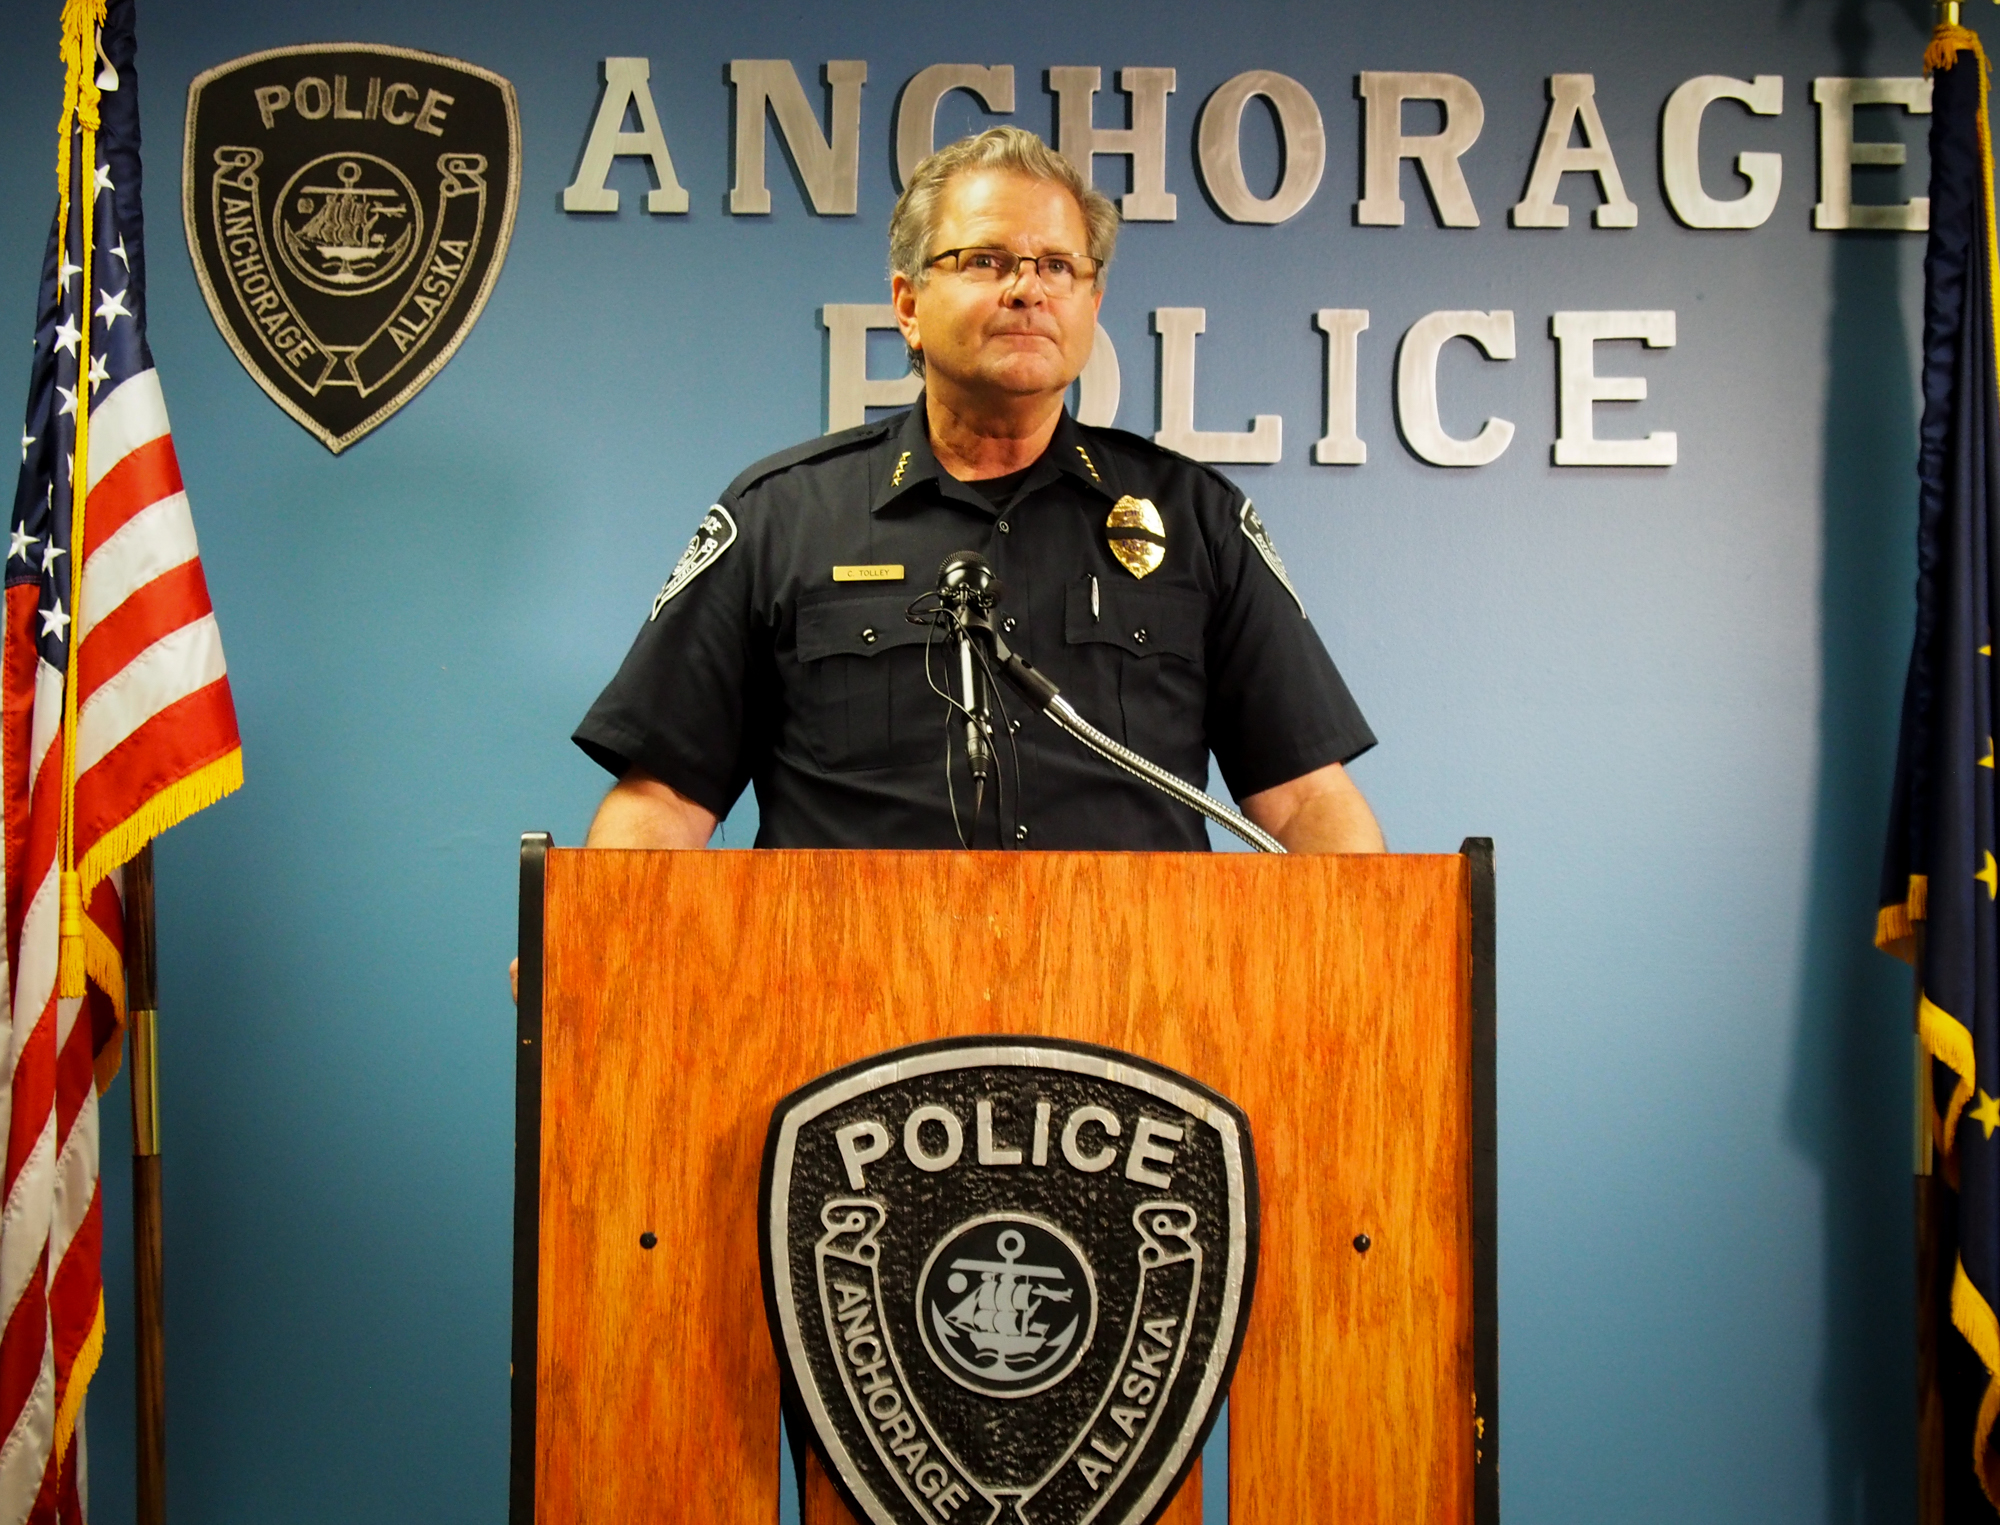 Anchorage Police Chief Chris Tolley addresses reporters during a brief press conference in July of 2016. (Photo by Zachariah Hughes/Alaska Public Media)